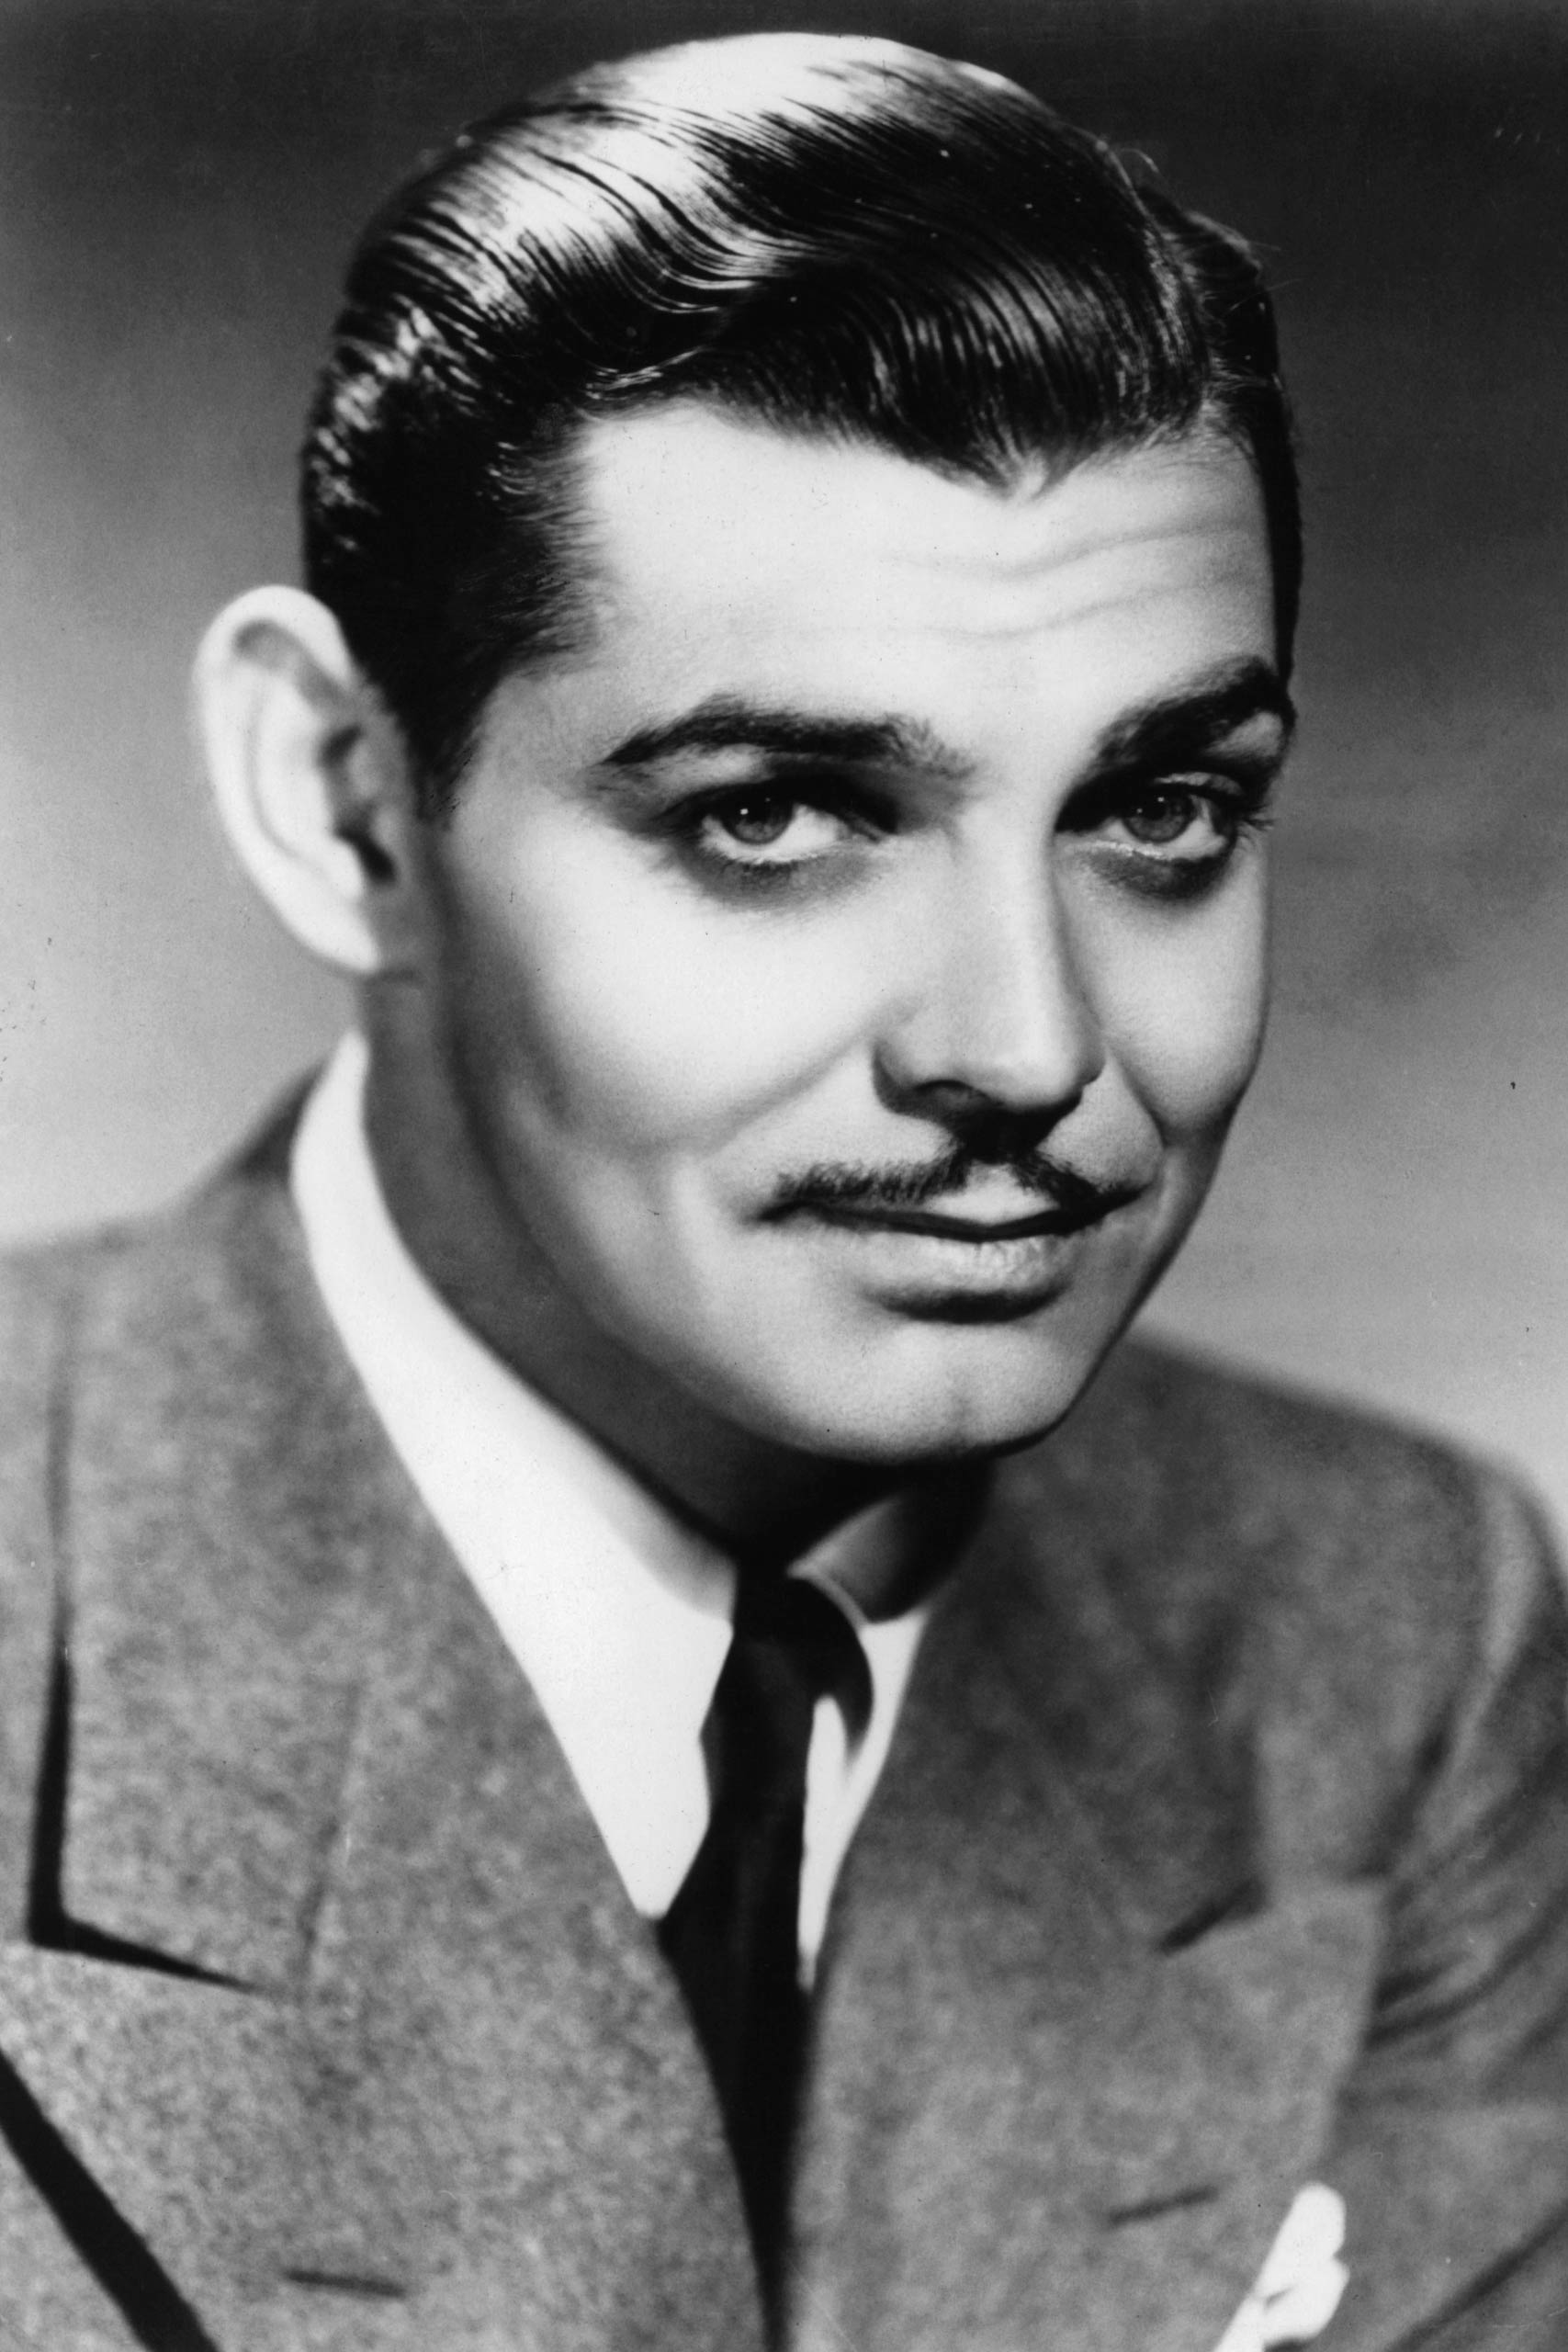 <strong>1935: Clark Gable - <i>It Happened One Night</i></strong>